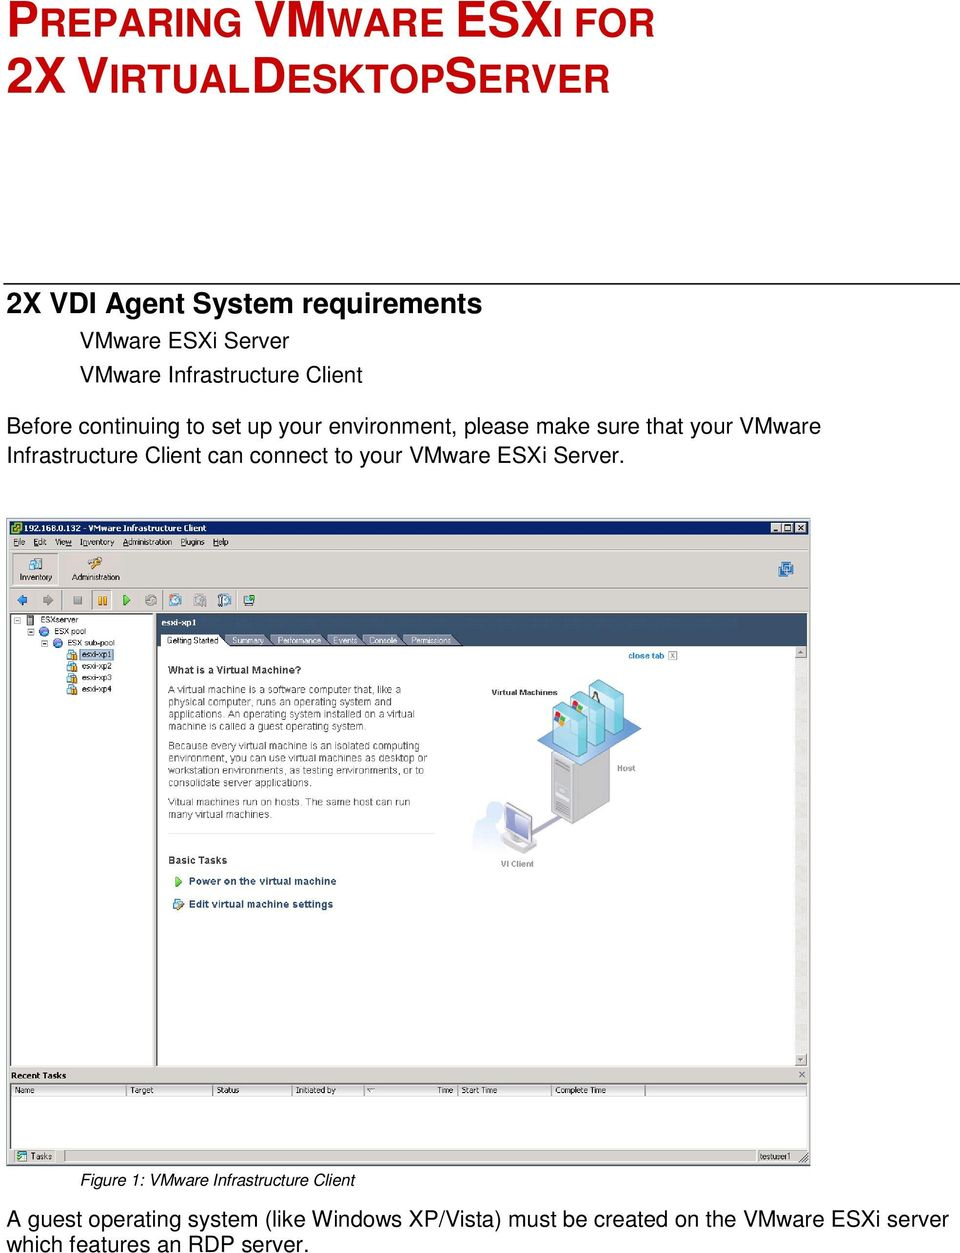 VMware Infrastructure Client can connect to your VMware ESXi Server.